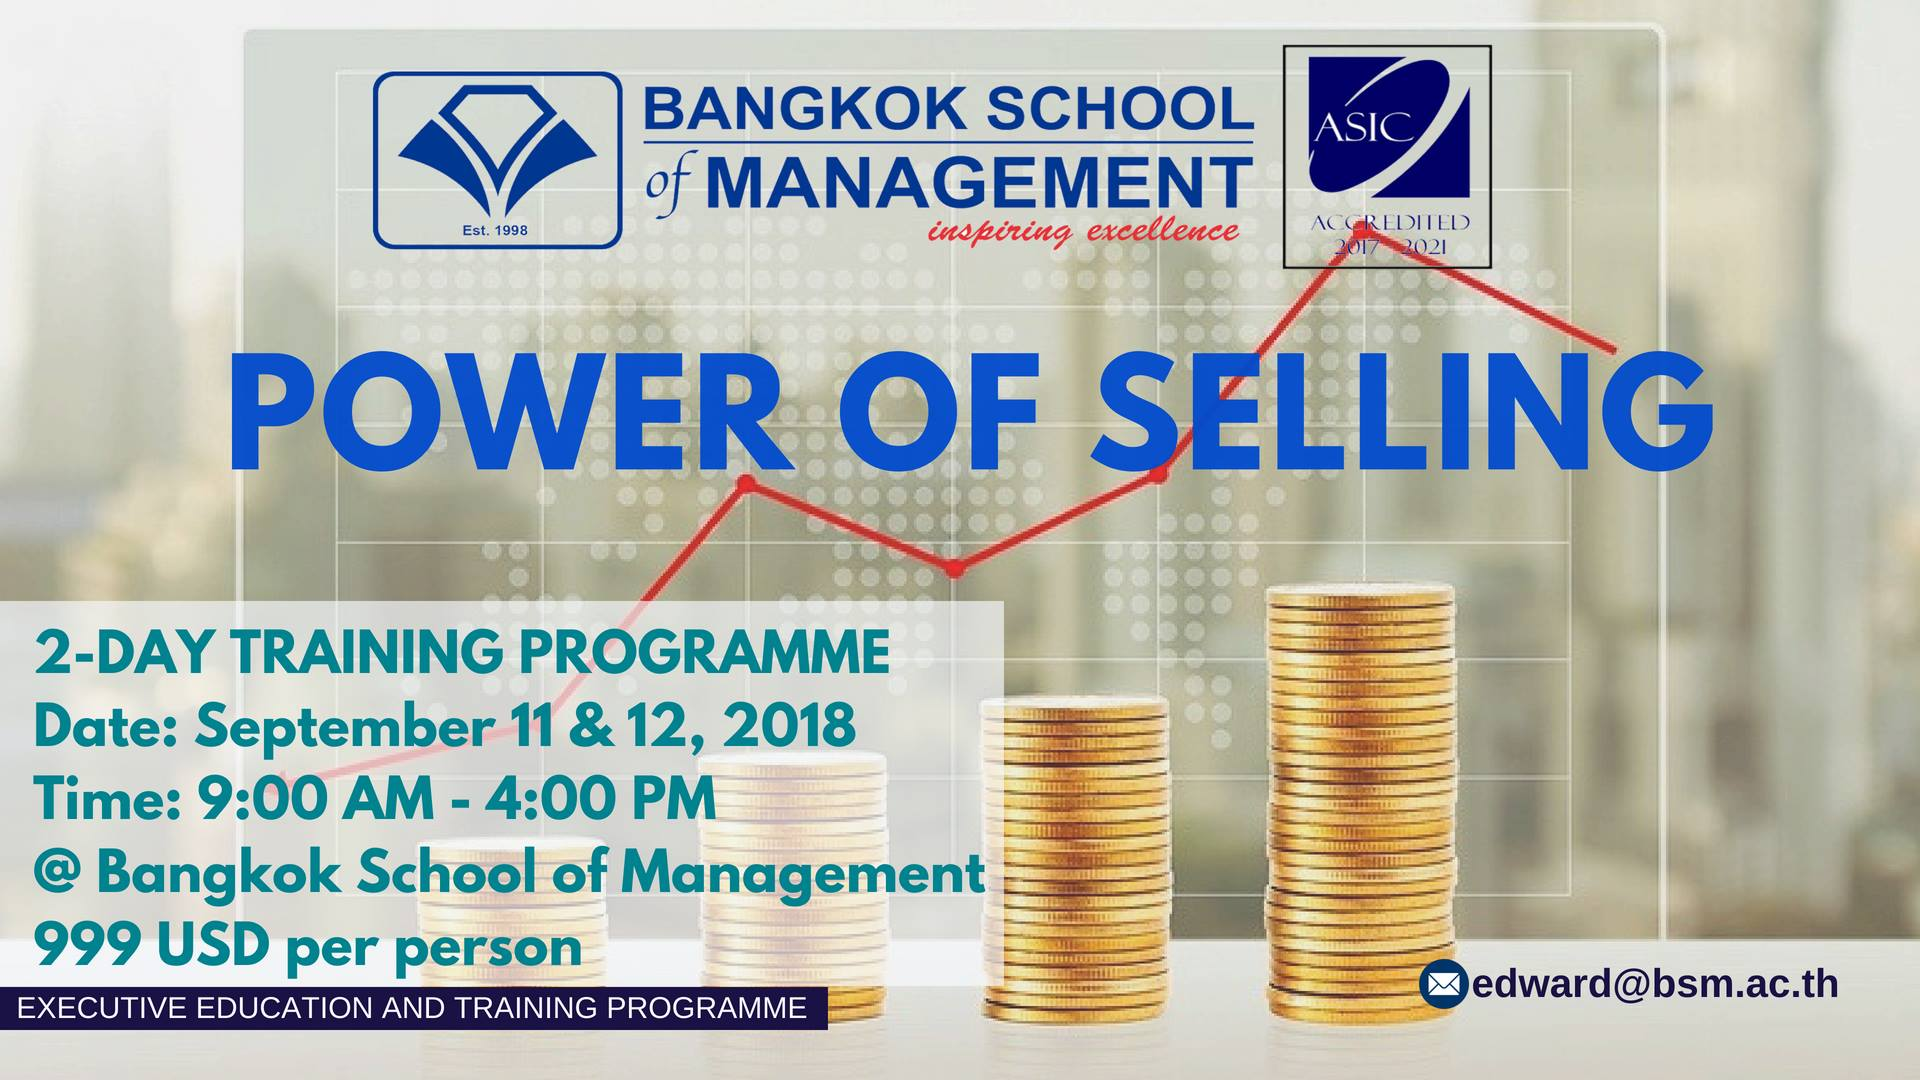 Date: September 11th &#8211; 12th 2018 </br></br> Training Programme: Power of Selling